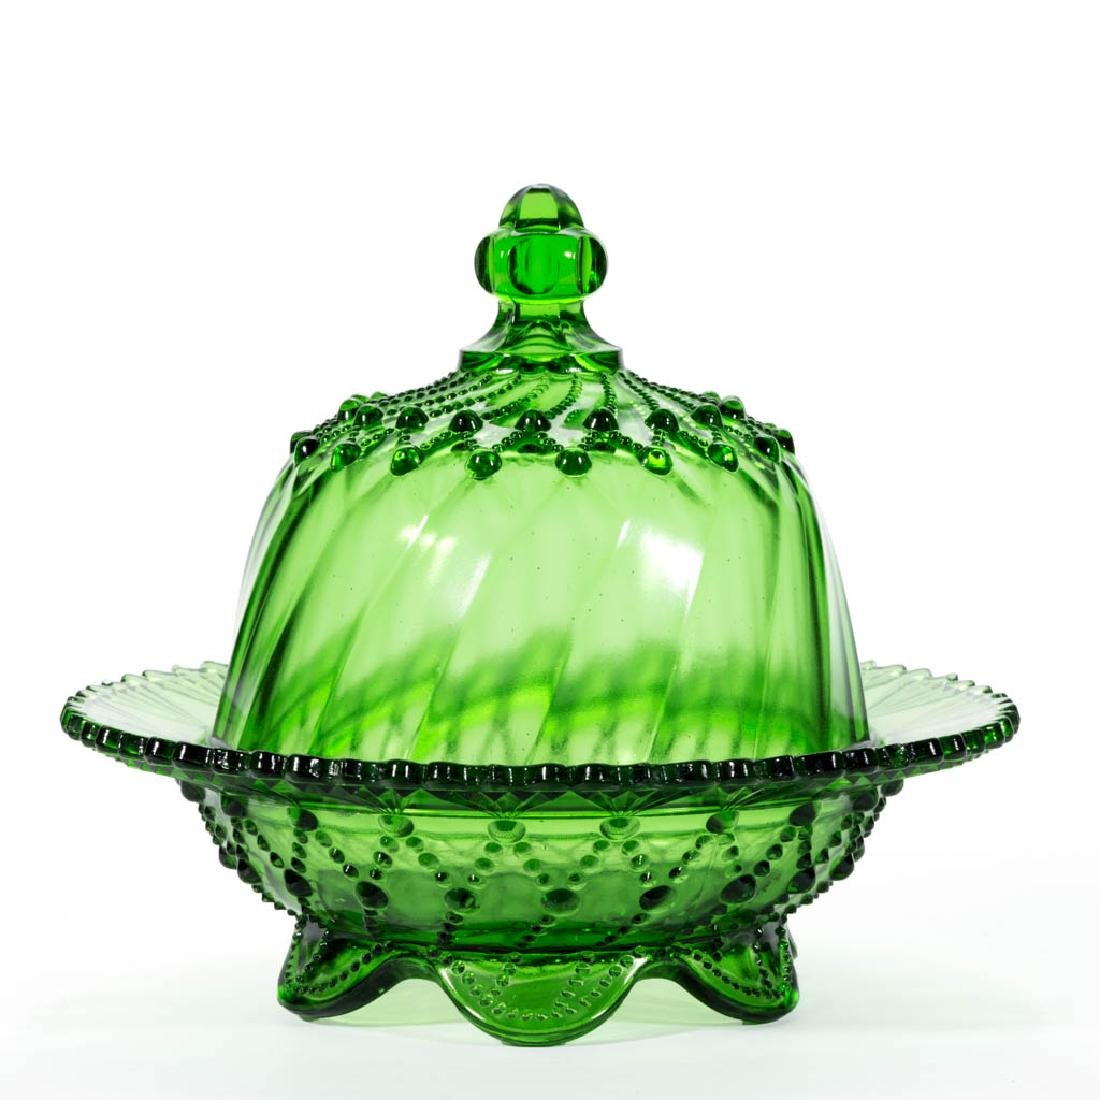 GREENTOWN NO. 350 / CORD DRAPERY COVERED BUTTER DISH